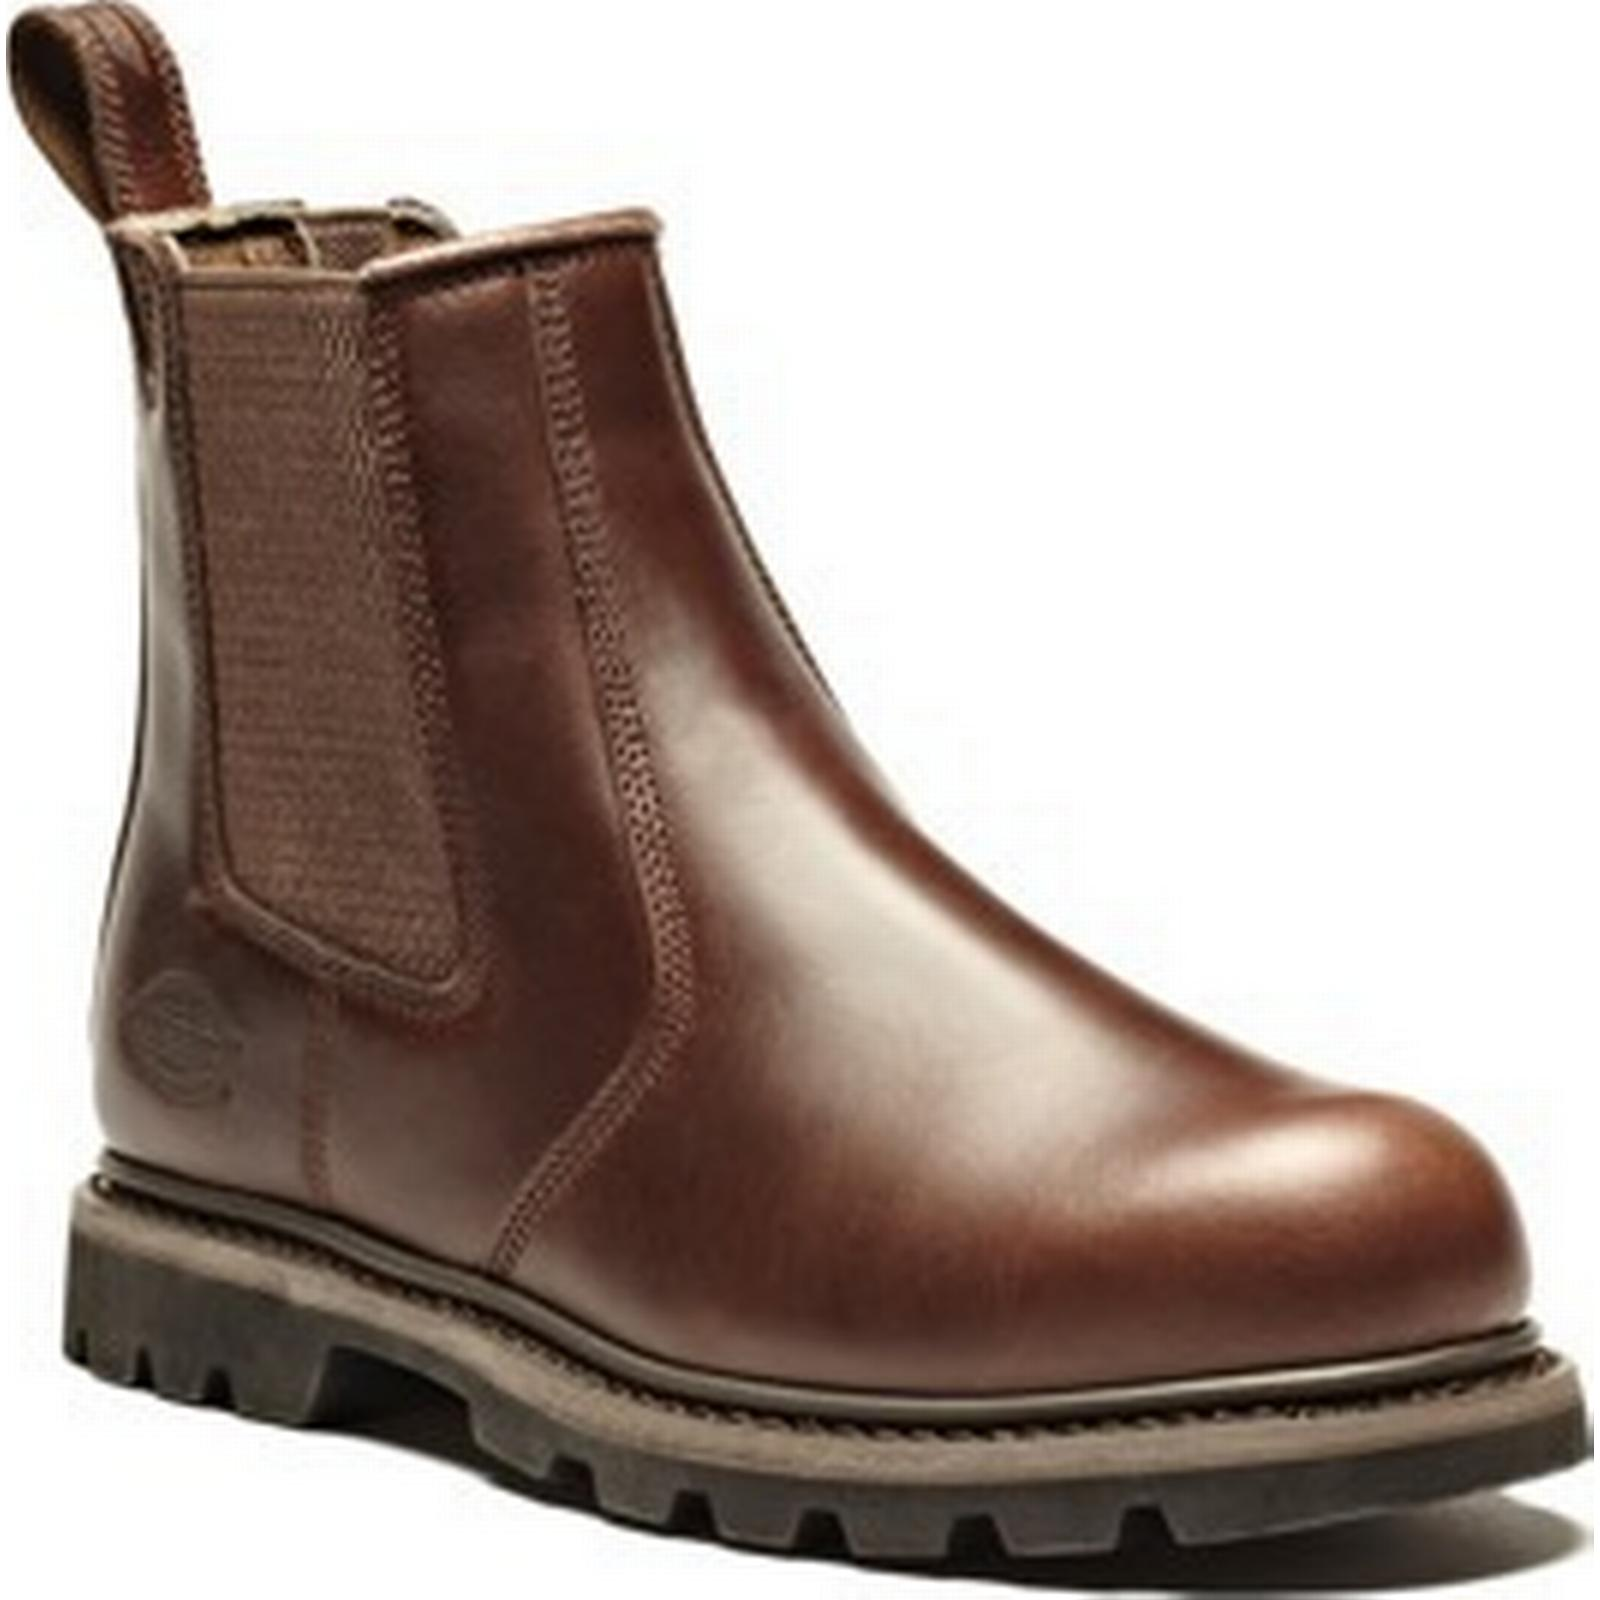 Dickies Workwear Fife Dealer Safety Boot Boot Safety Brown / 5.5 ec683d